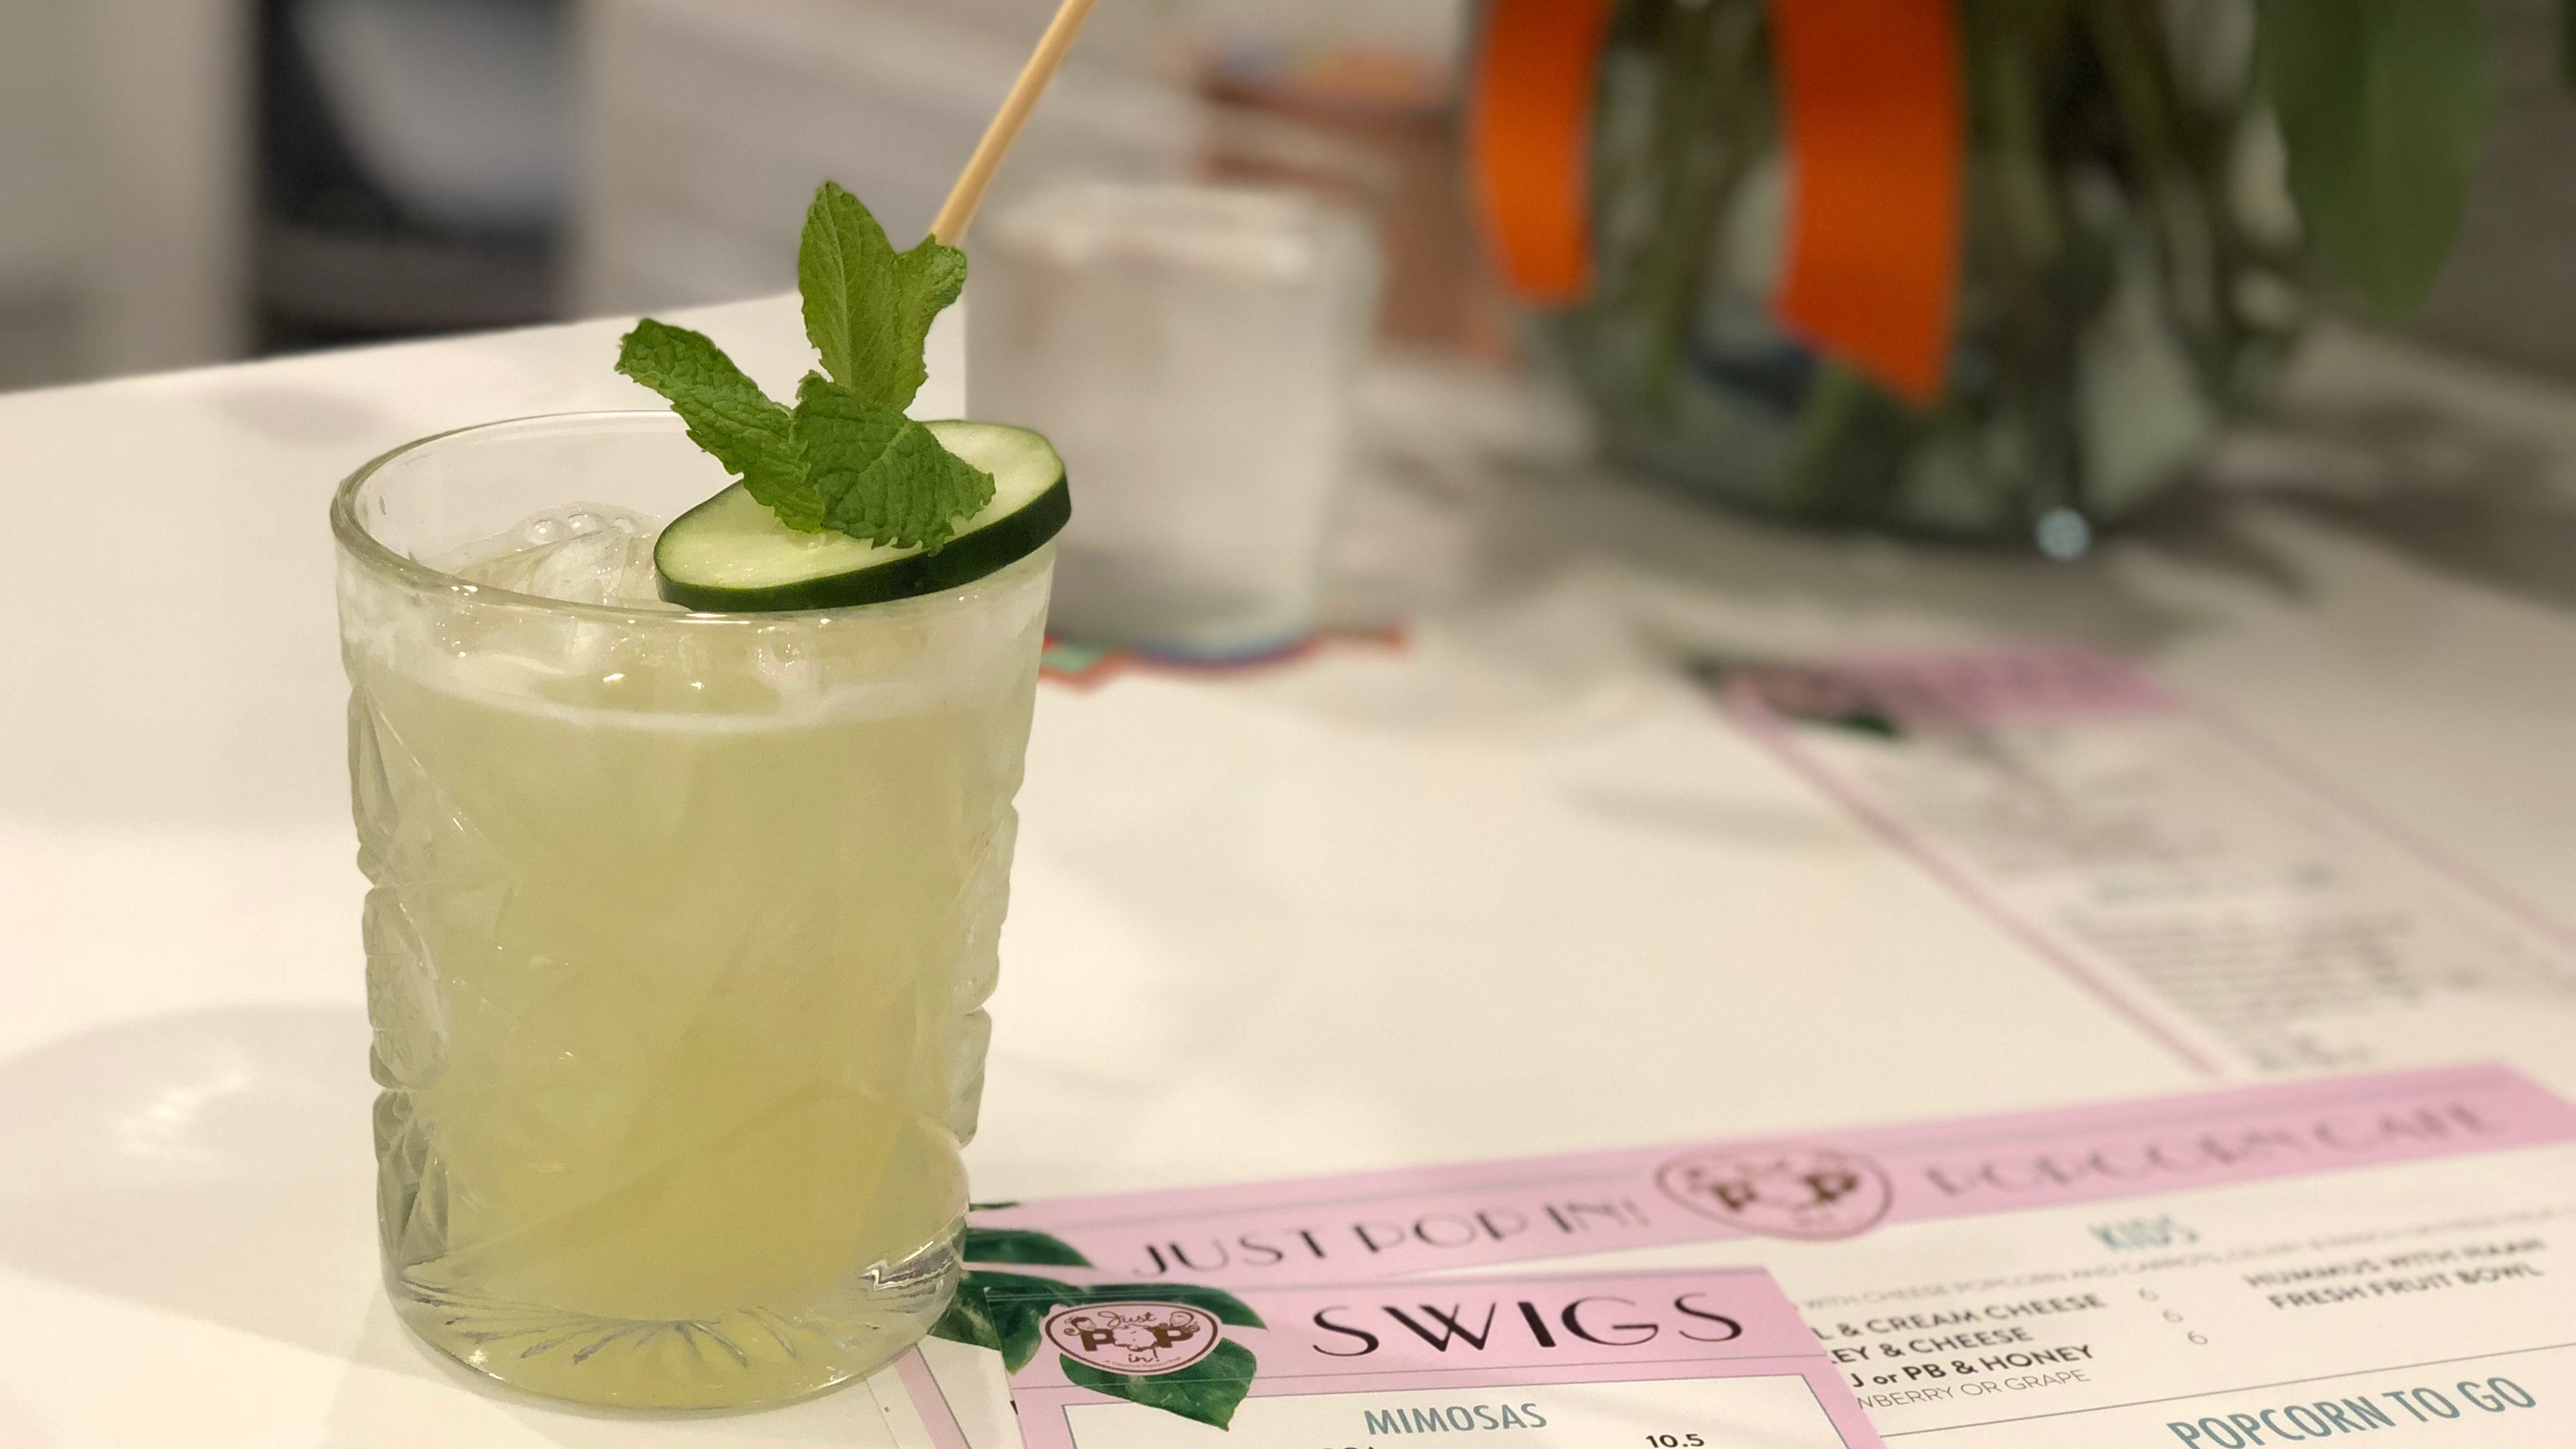 Wild drinks at the tiki lounge, John Mellencamp and a new popcorn cafe